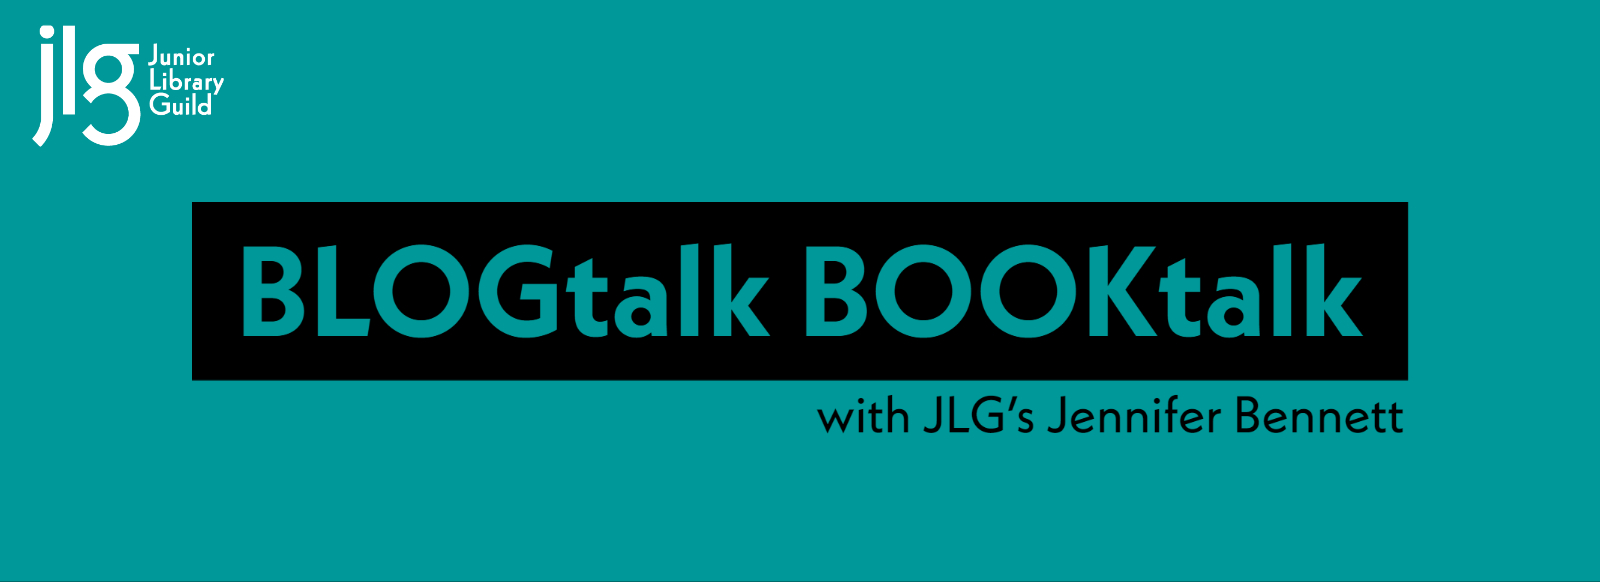 BLOGtalk BOOKtalk with Jennifer Bennett